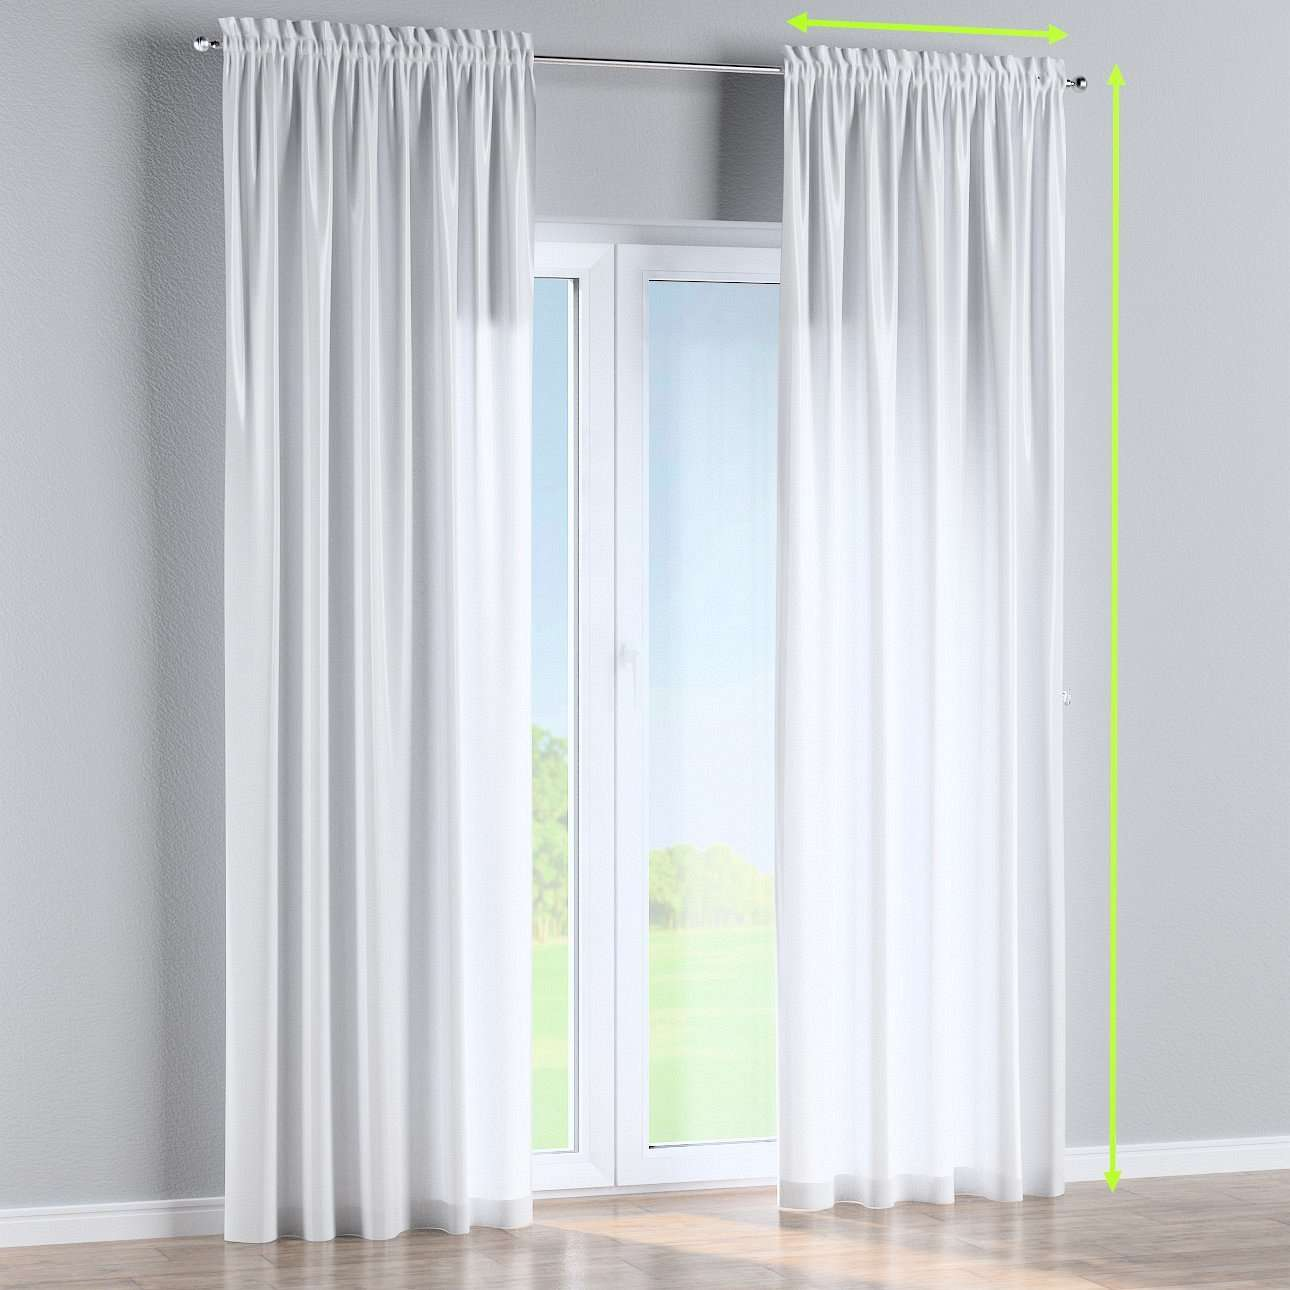 Slot and frill lined curtains in collection Damasco, fabric: 141-78